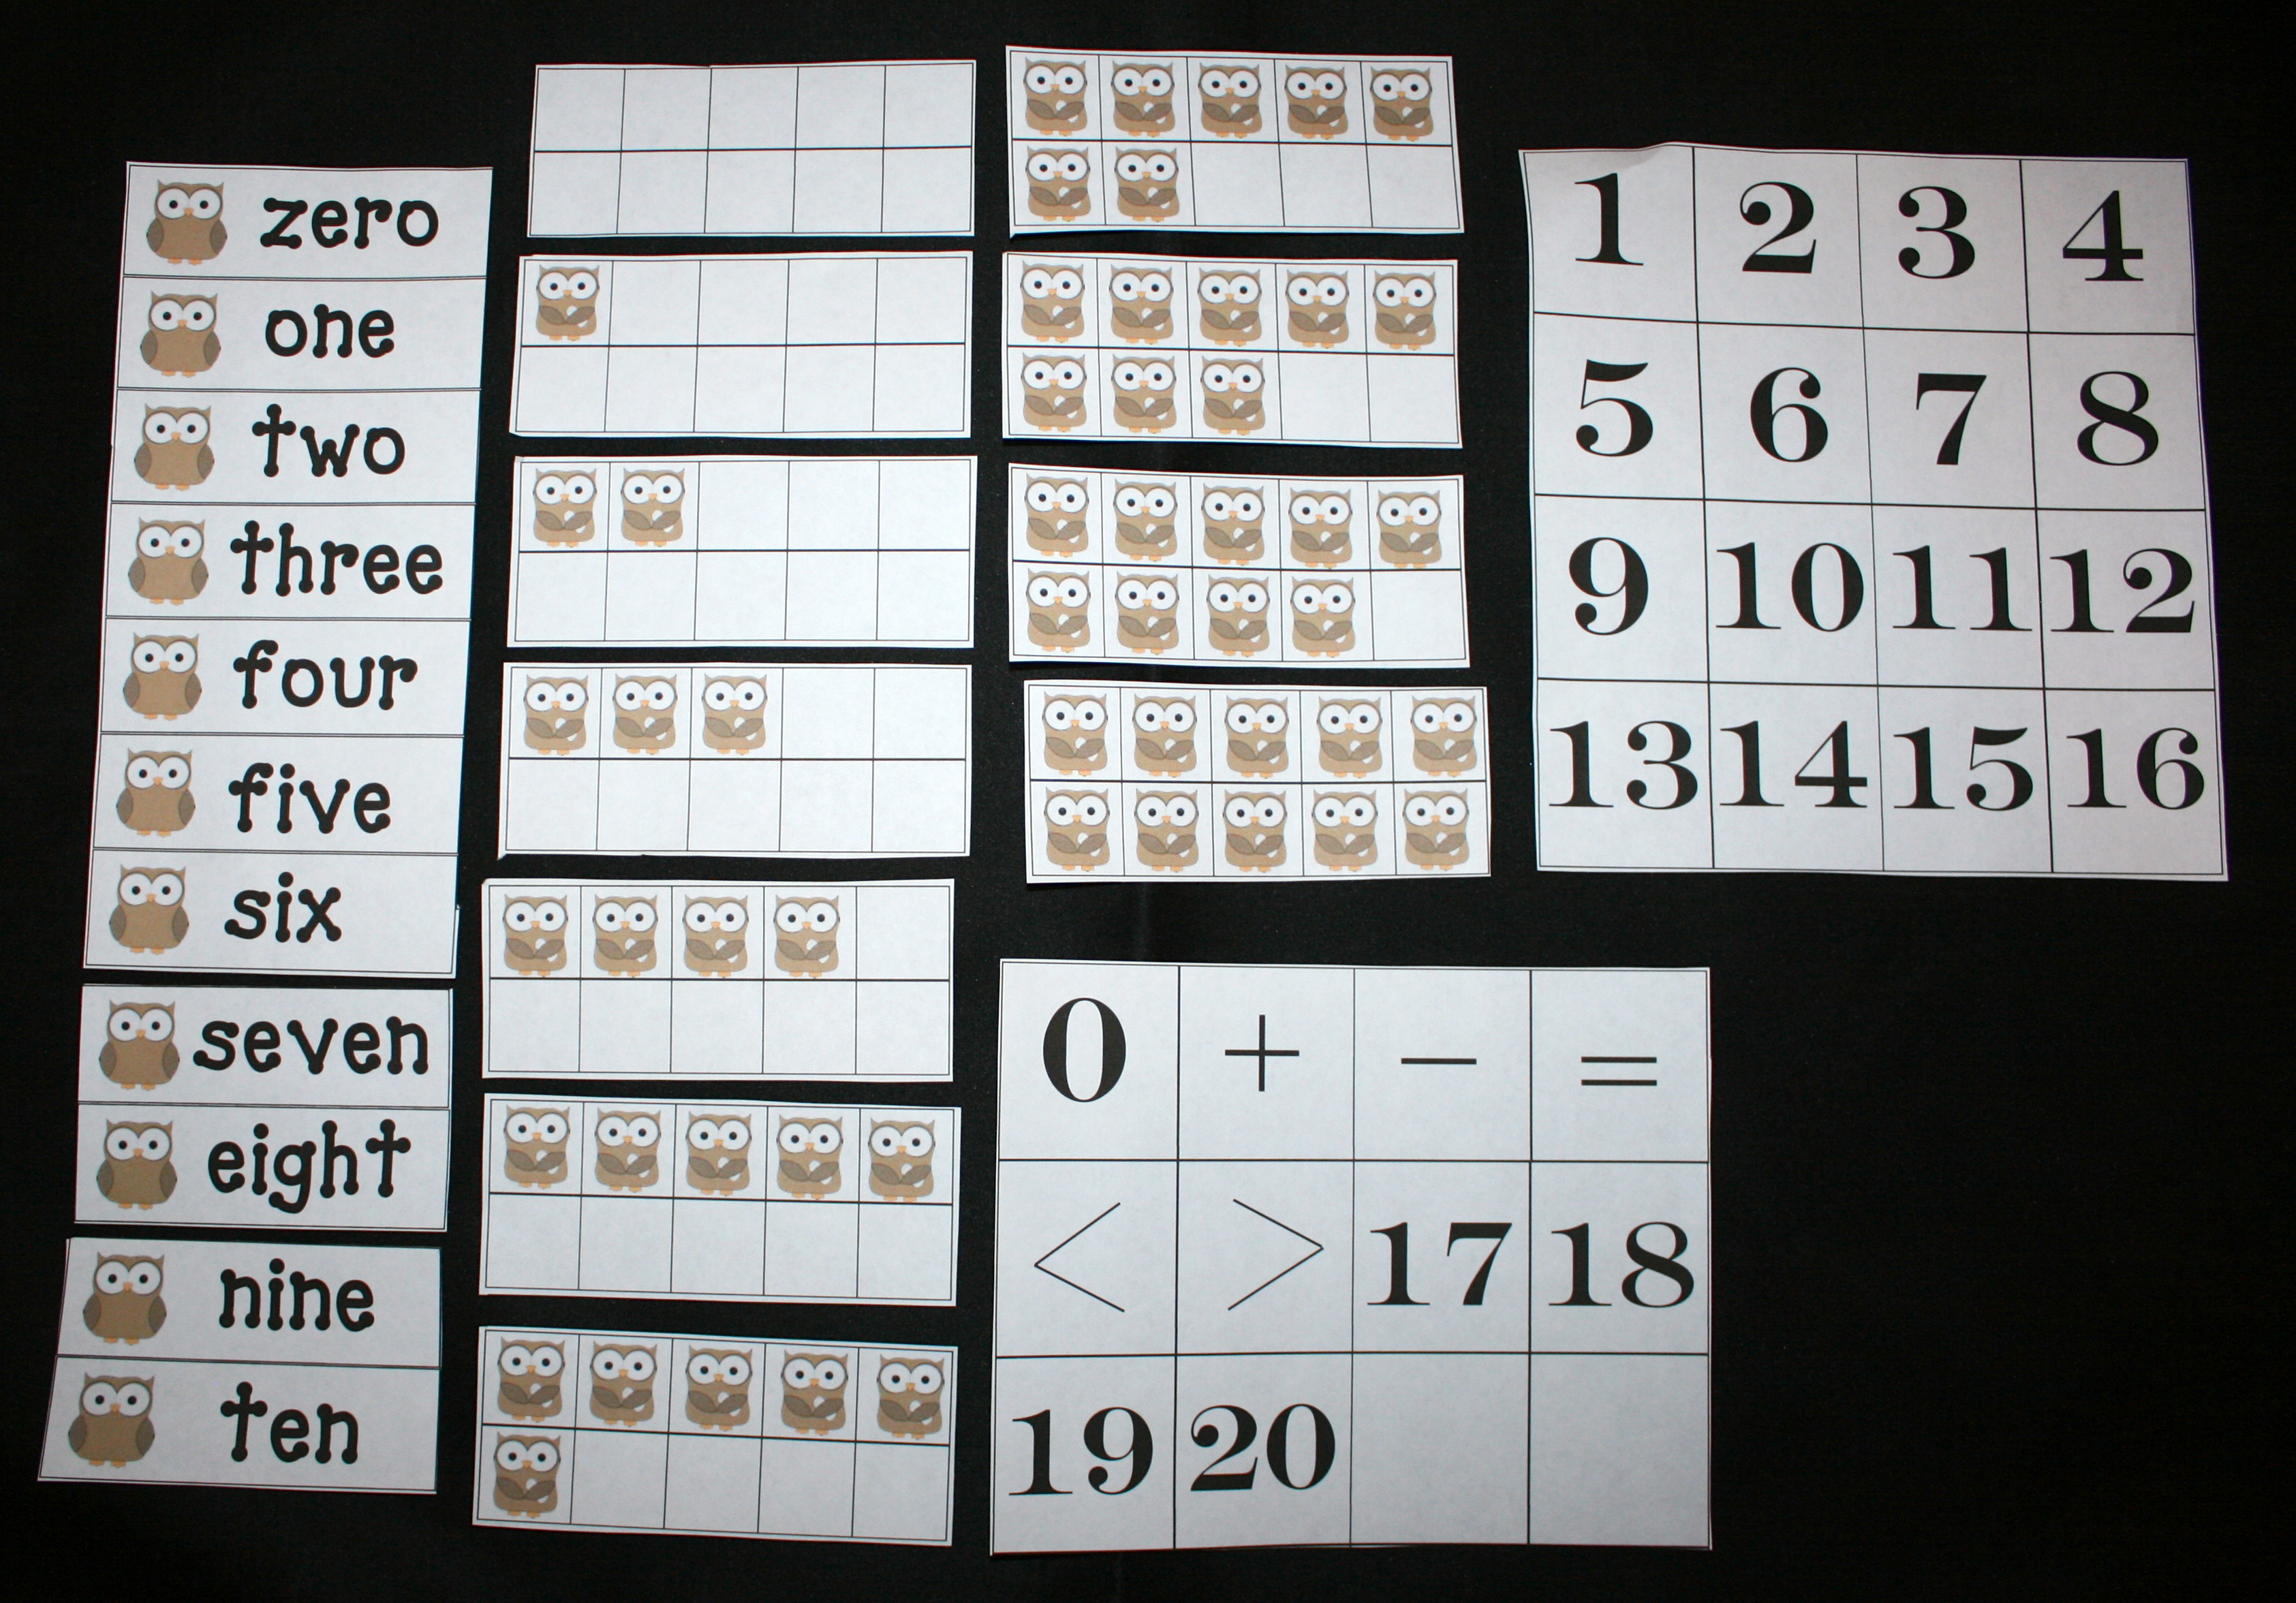 10 frame templates, free ten frame templates, ten frame activities, 10 frame activities, apple lessons, apple activities, pirate activities, owl activities, themed 10 frame templates, subitizing activities, place value activities, number sense, common core math for kndergarten, free common core math for kindergarten, free CCSS